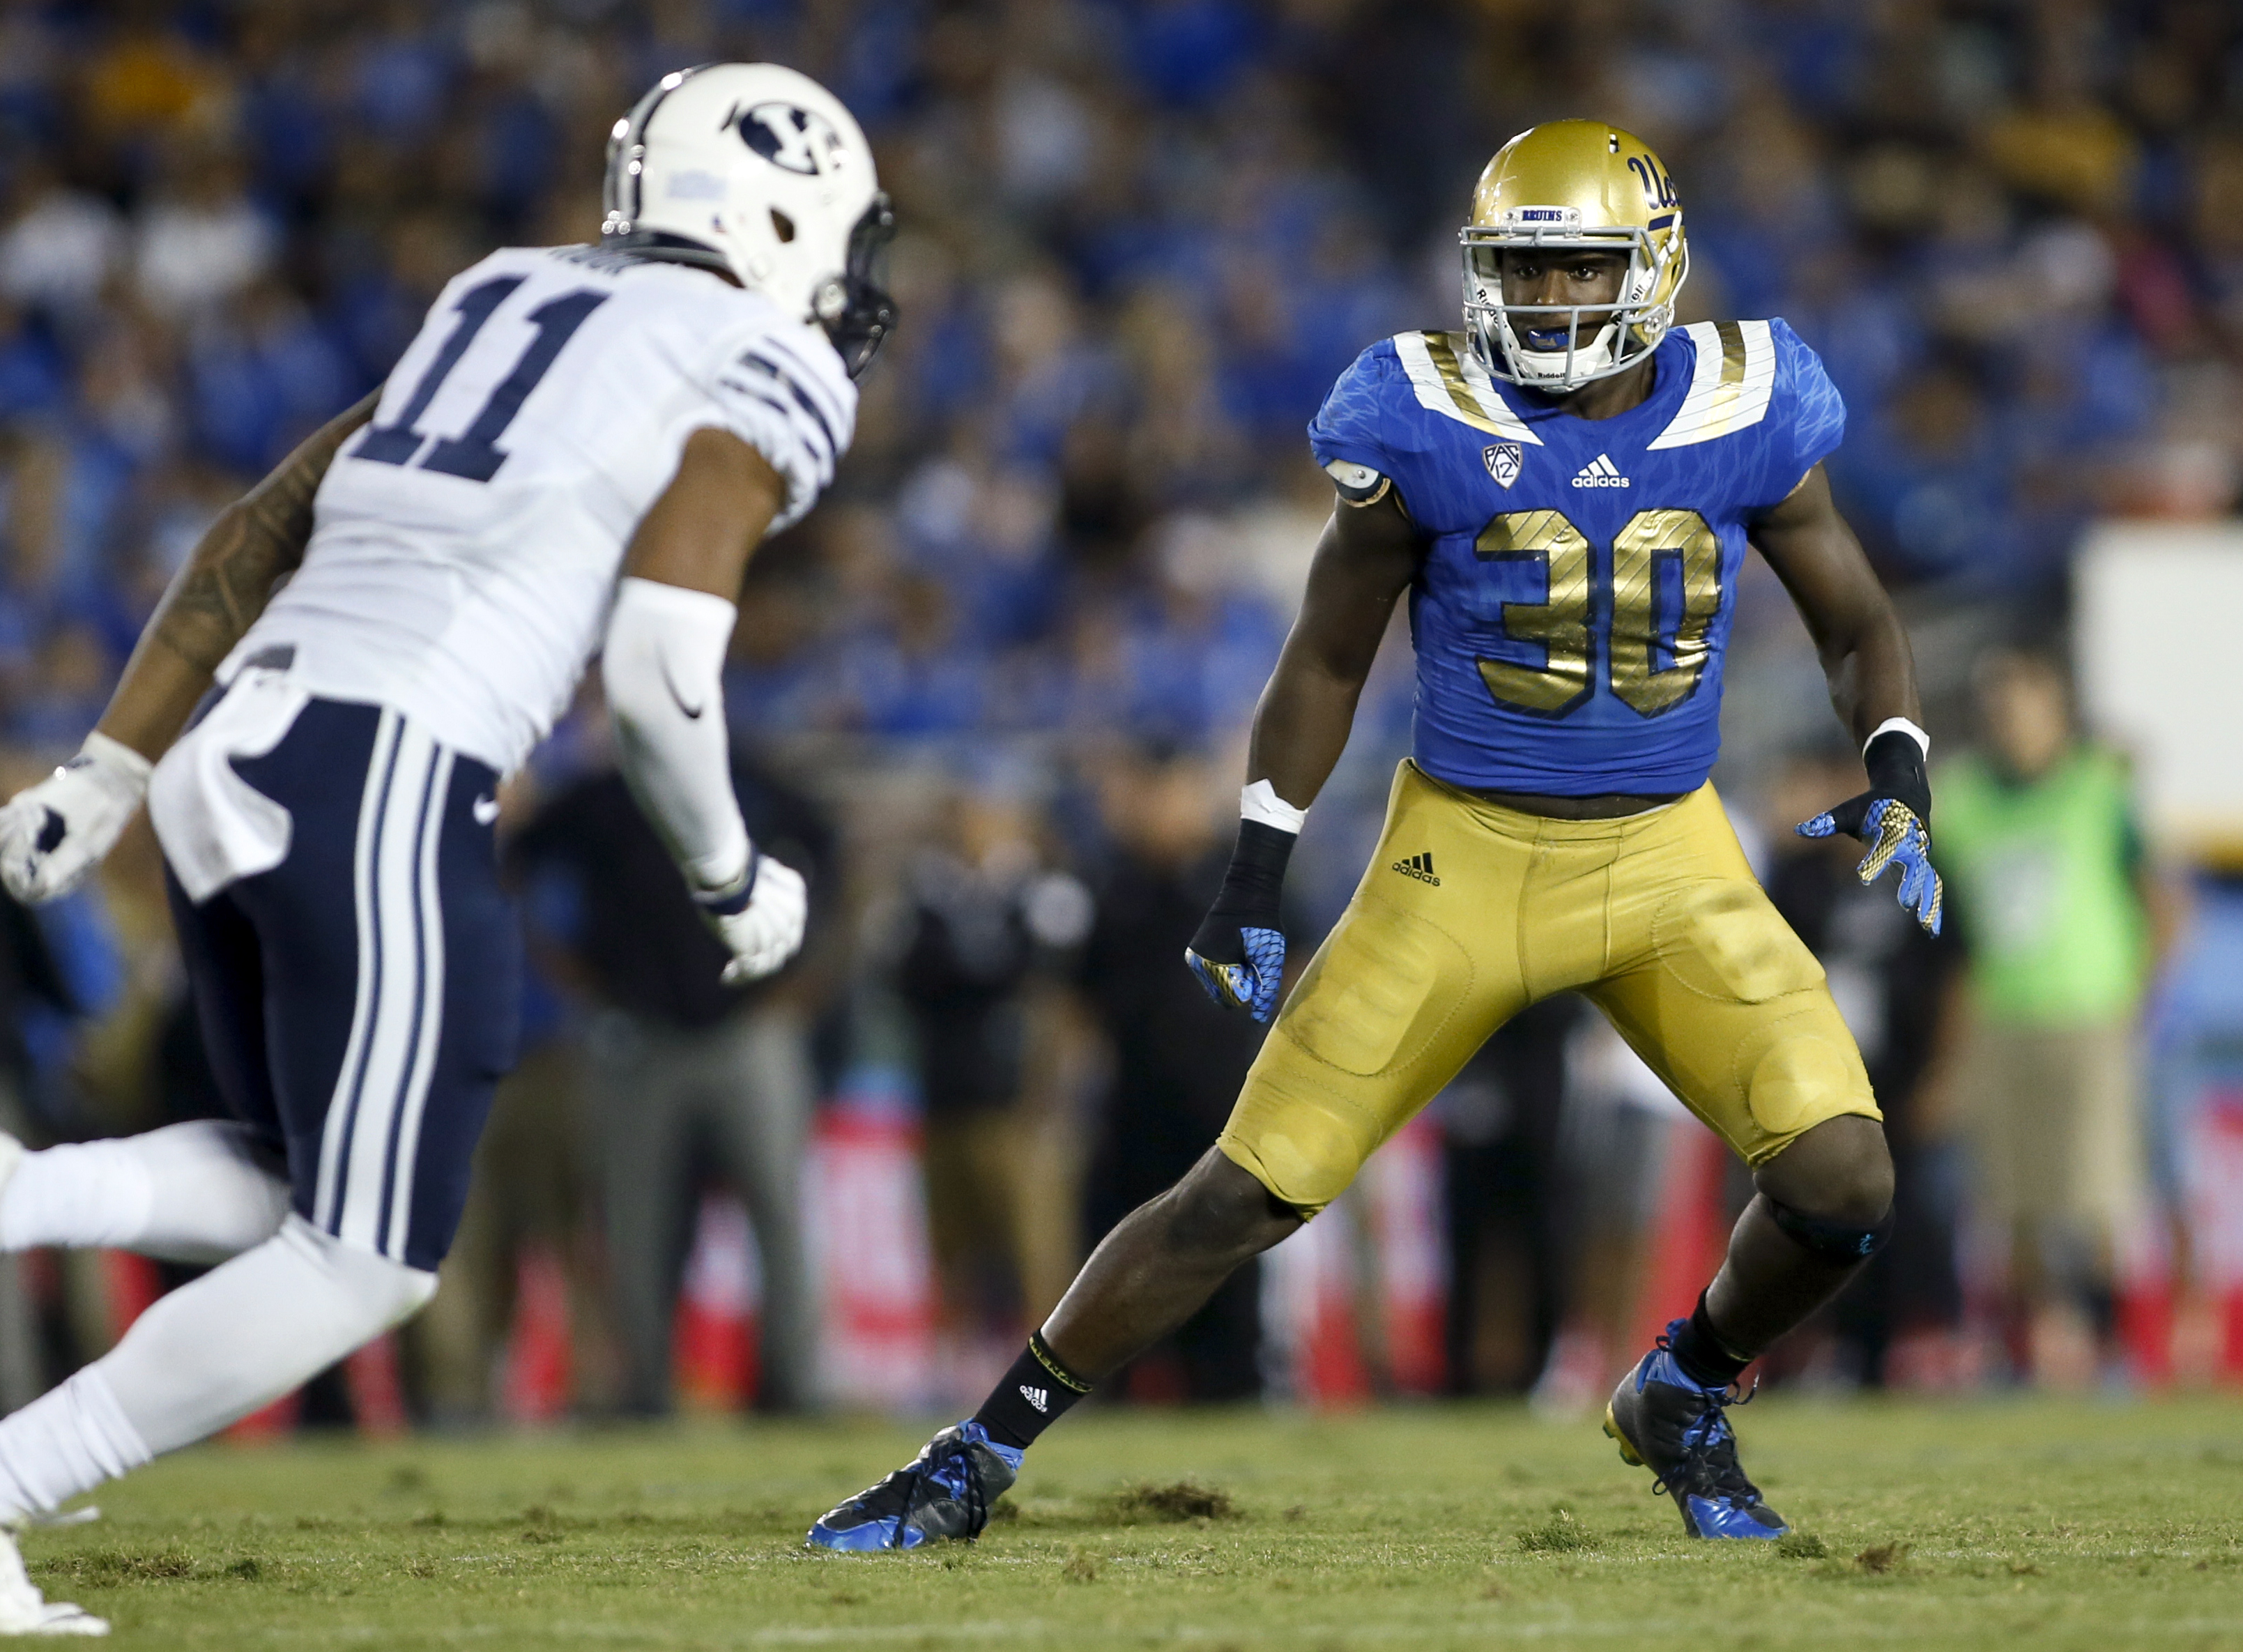 FILE - In this Sept. 19, 2015, file photo, UCLA linebacker Myles Jack in action against BYU during an NCAA college football game in Pasadena, Calif. Jack is one of the top defensive players available in the NFL Draft, which starts April 28 in Chicago. (AP